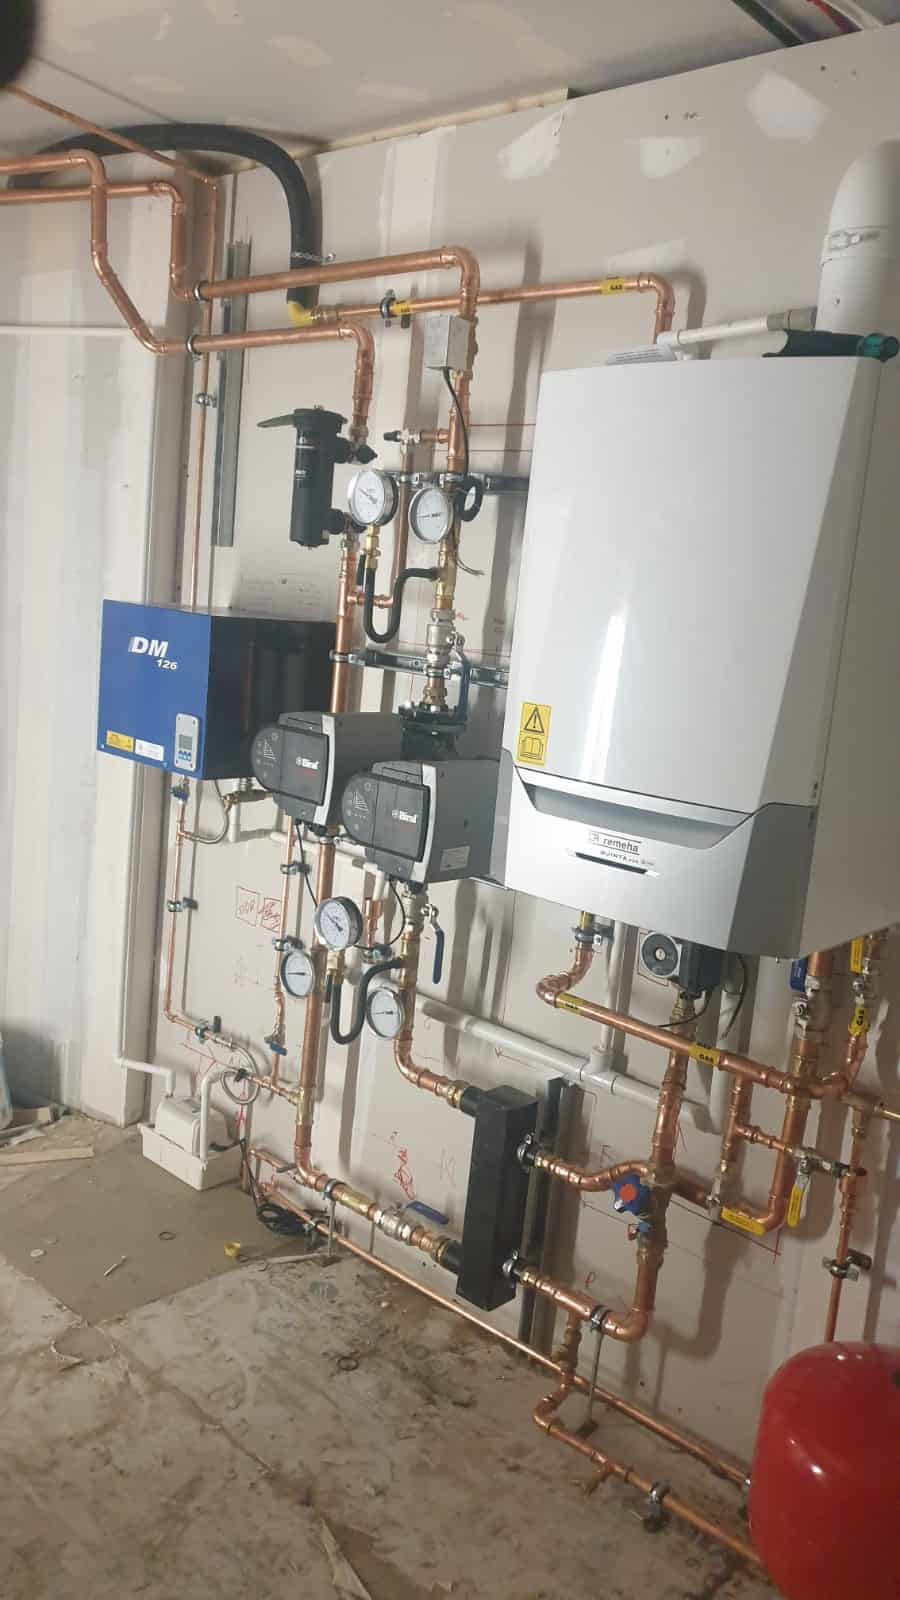 Commercial boiler and pipework installation at sheltered housing complex